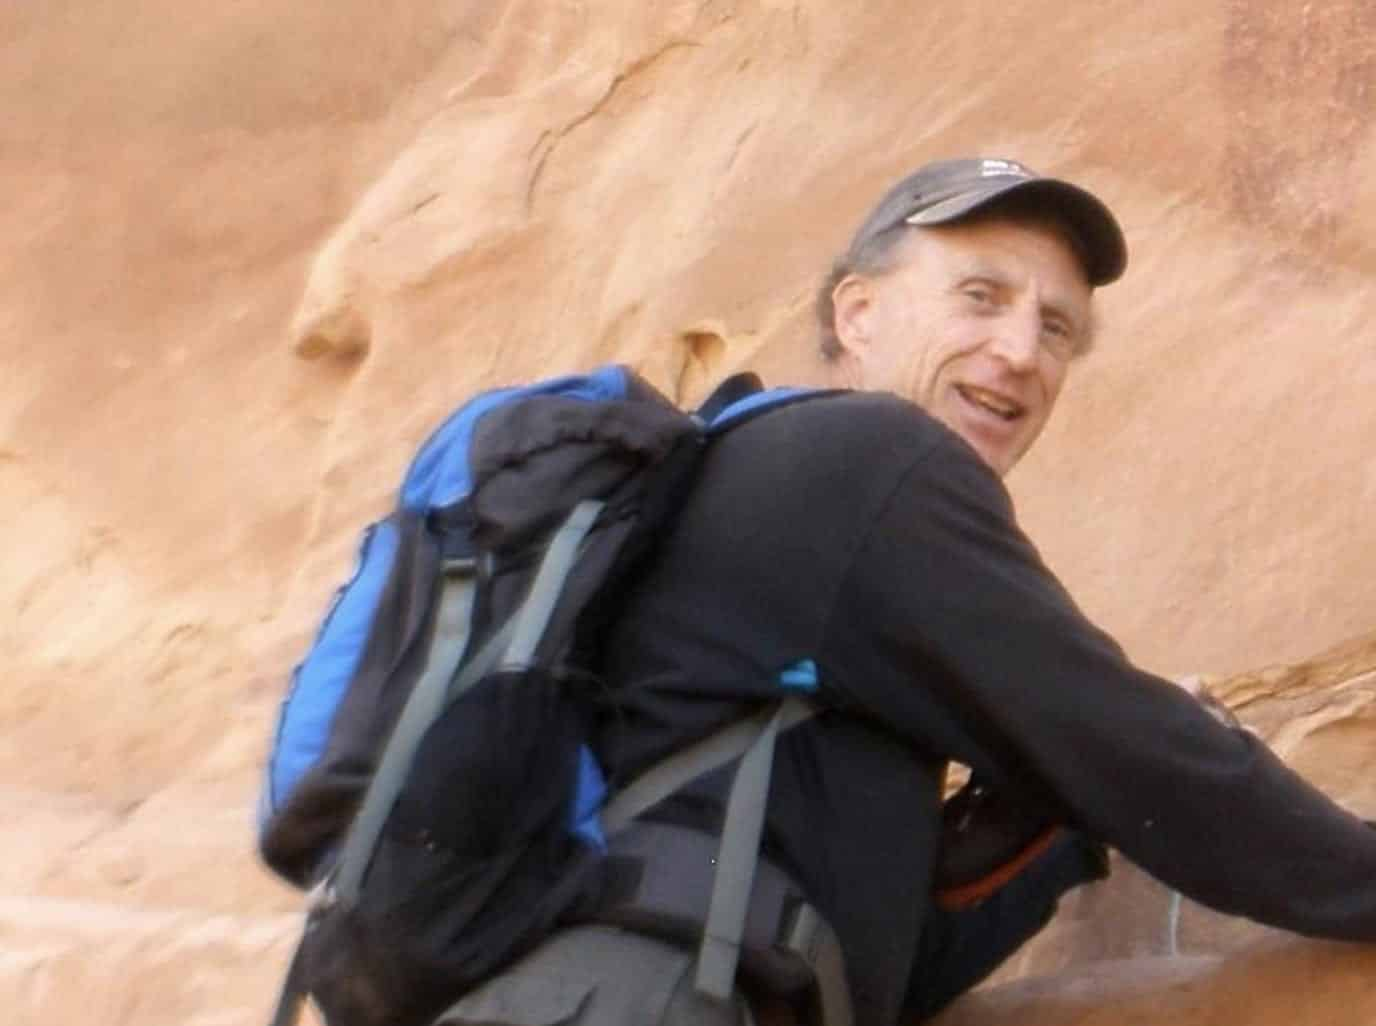 Drone deployed in search and rescue of missing hiker at Colorado National Monument